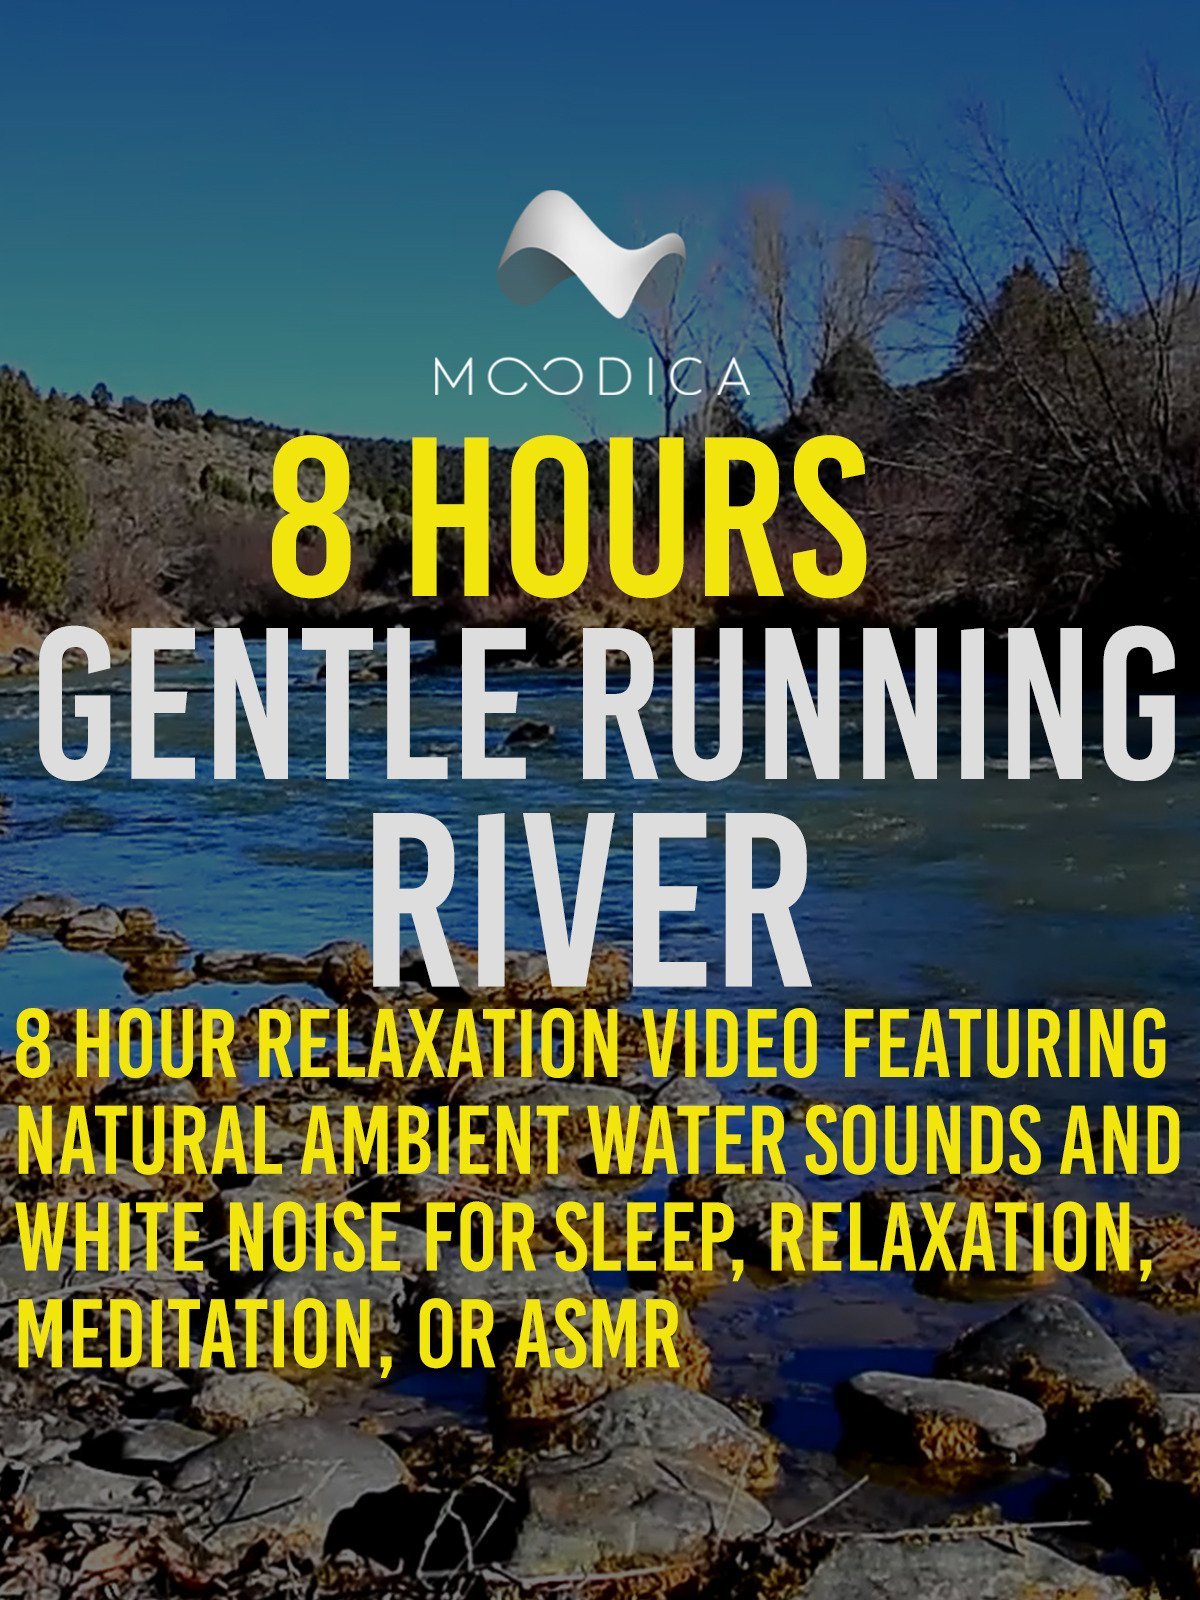 8 Hours: Gentle Running River: 8 Hour Relaxation Video Featuring Natural Ambient Water Sound and White Noise For Sleep, Relaxation, Meditation, or ASMR